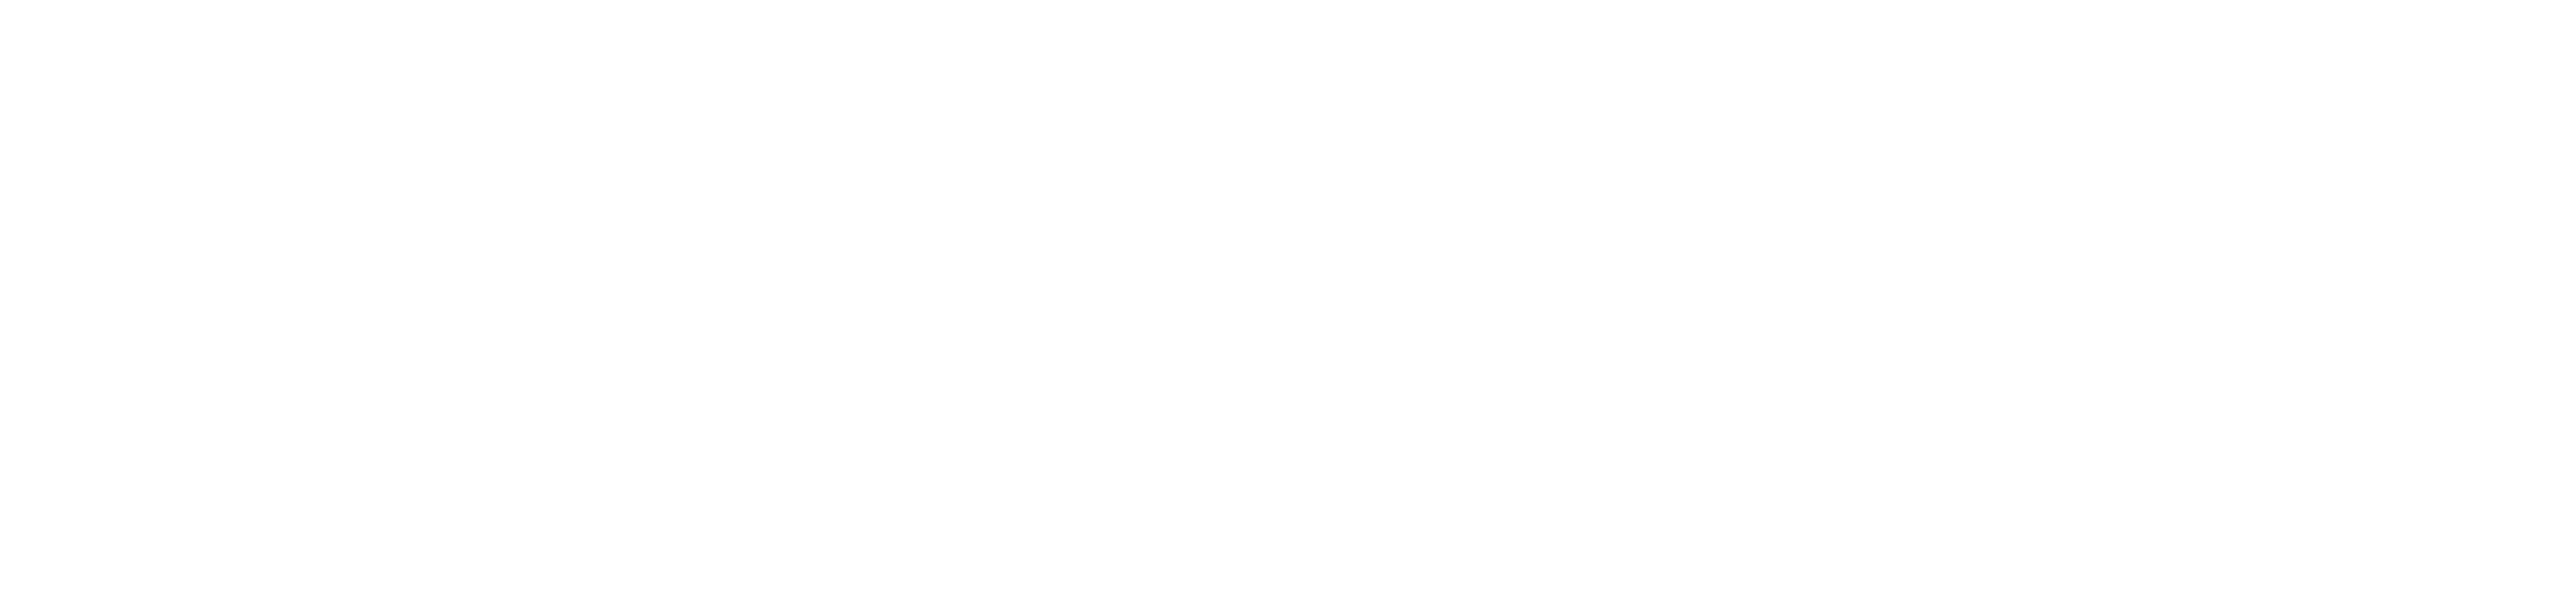 ValuationOffice_Logo_1920x1080_WHITE